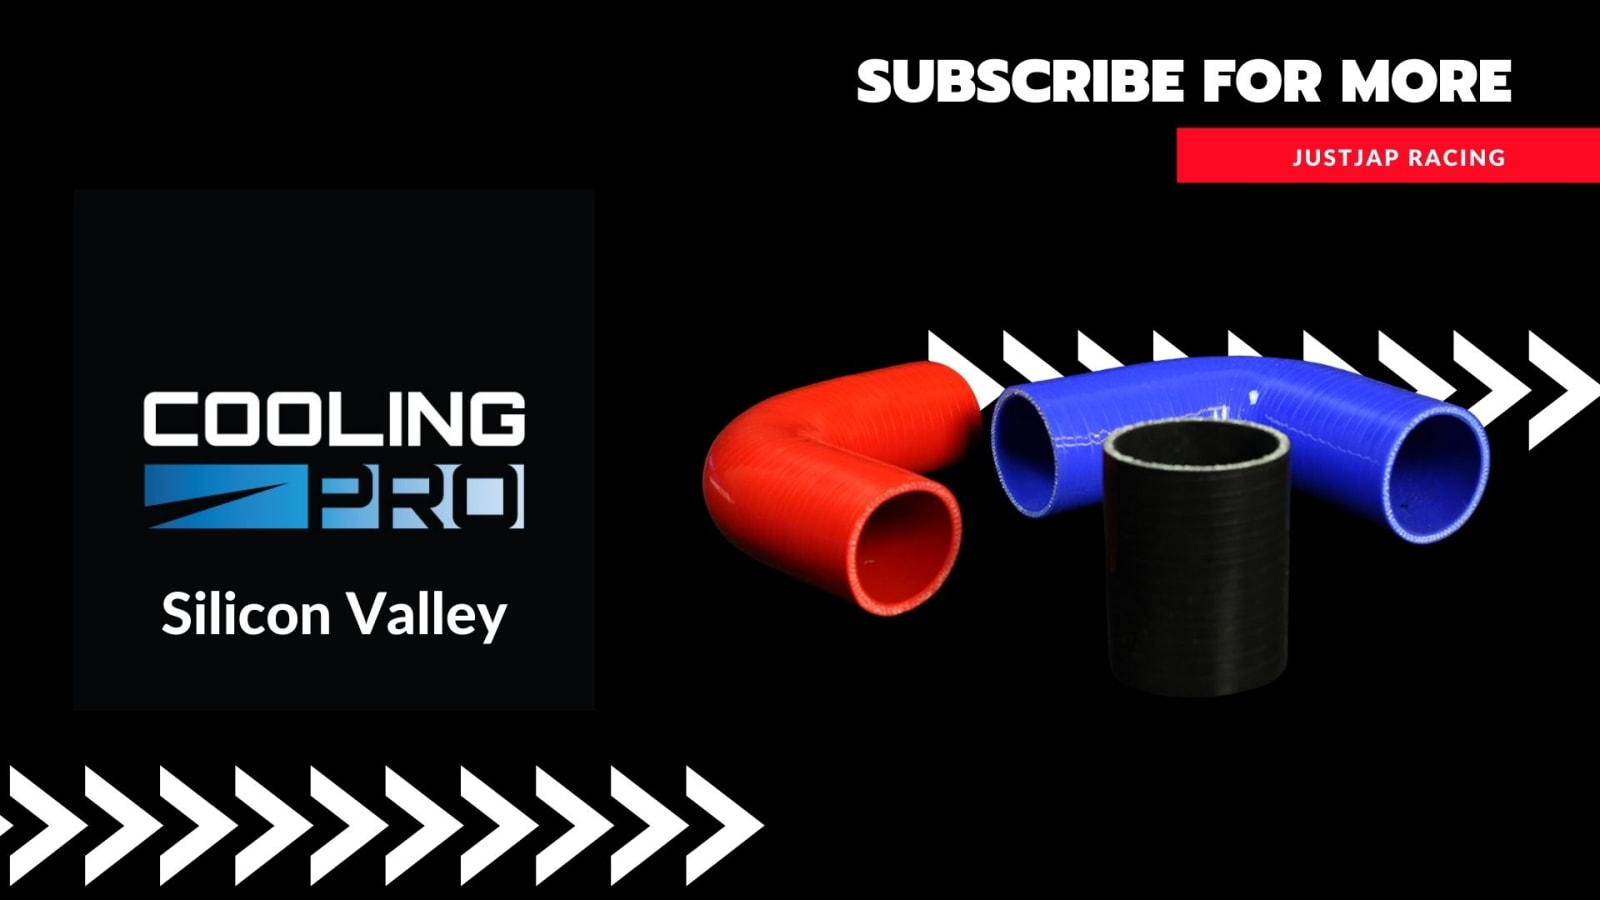 Cooling Pro Silicone 2 Inch / 51mm Straight Joiner Hose